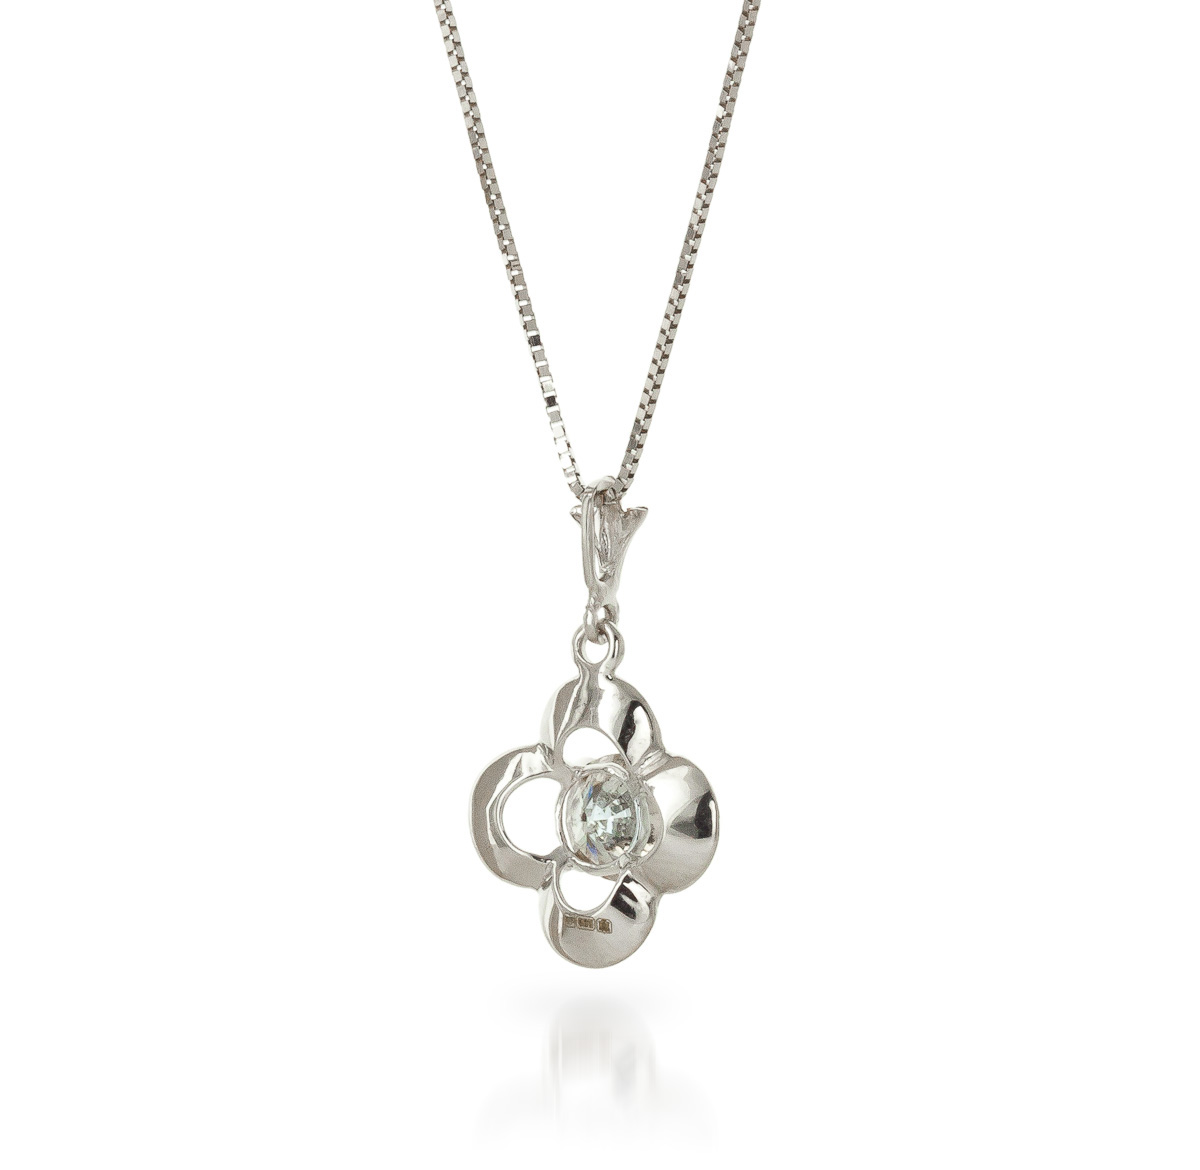 Round Cut Diamond Pendant Necklace 0.5 ct in 9ct White Gold